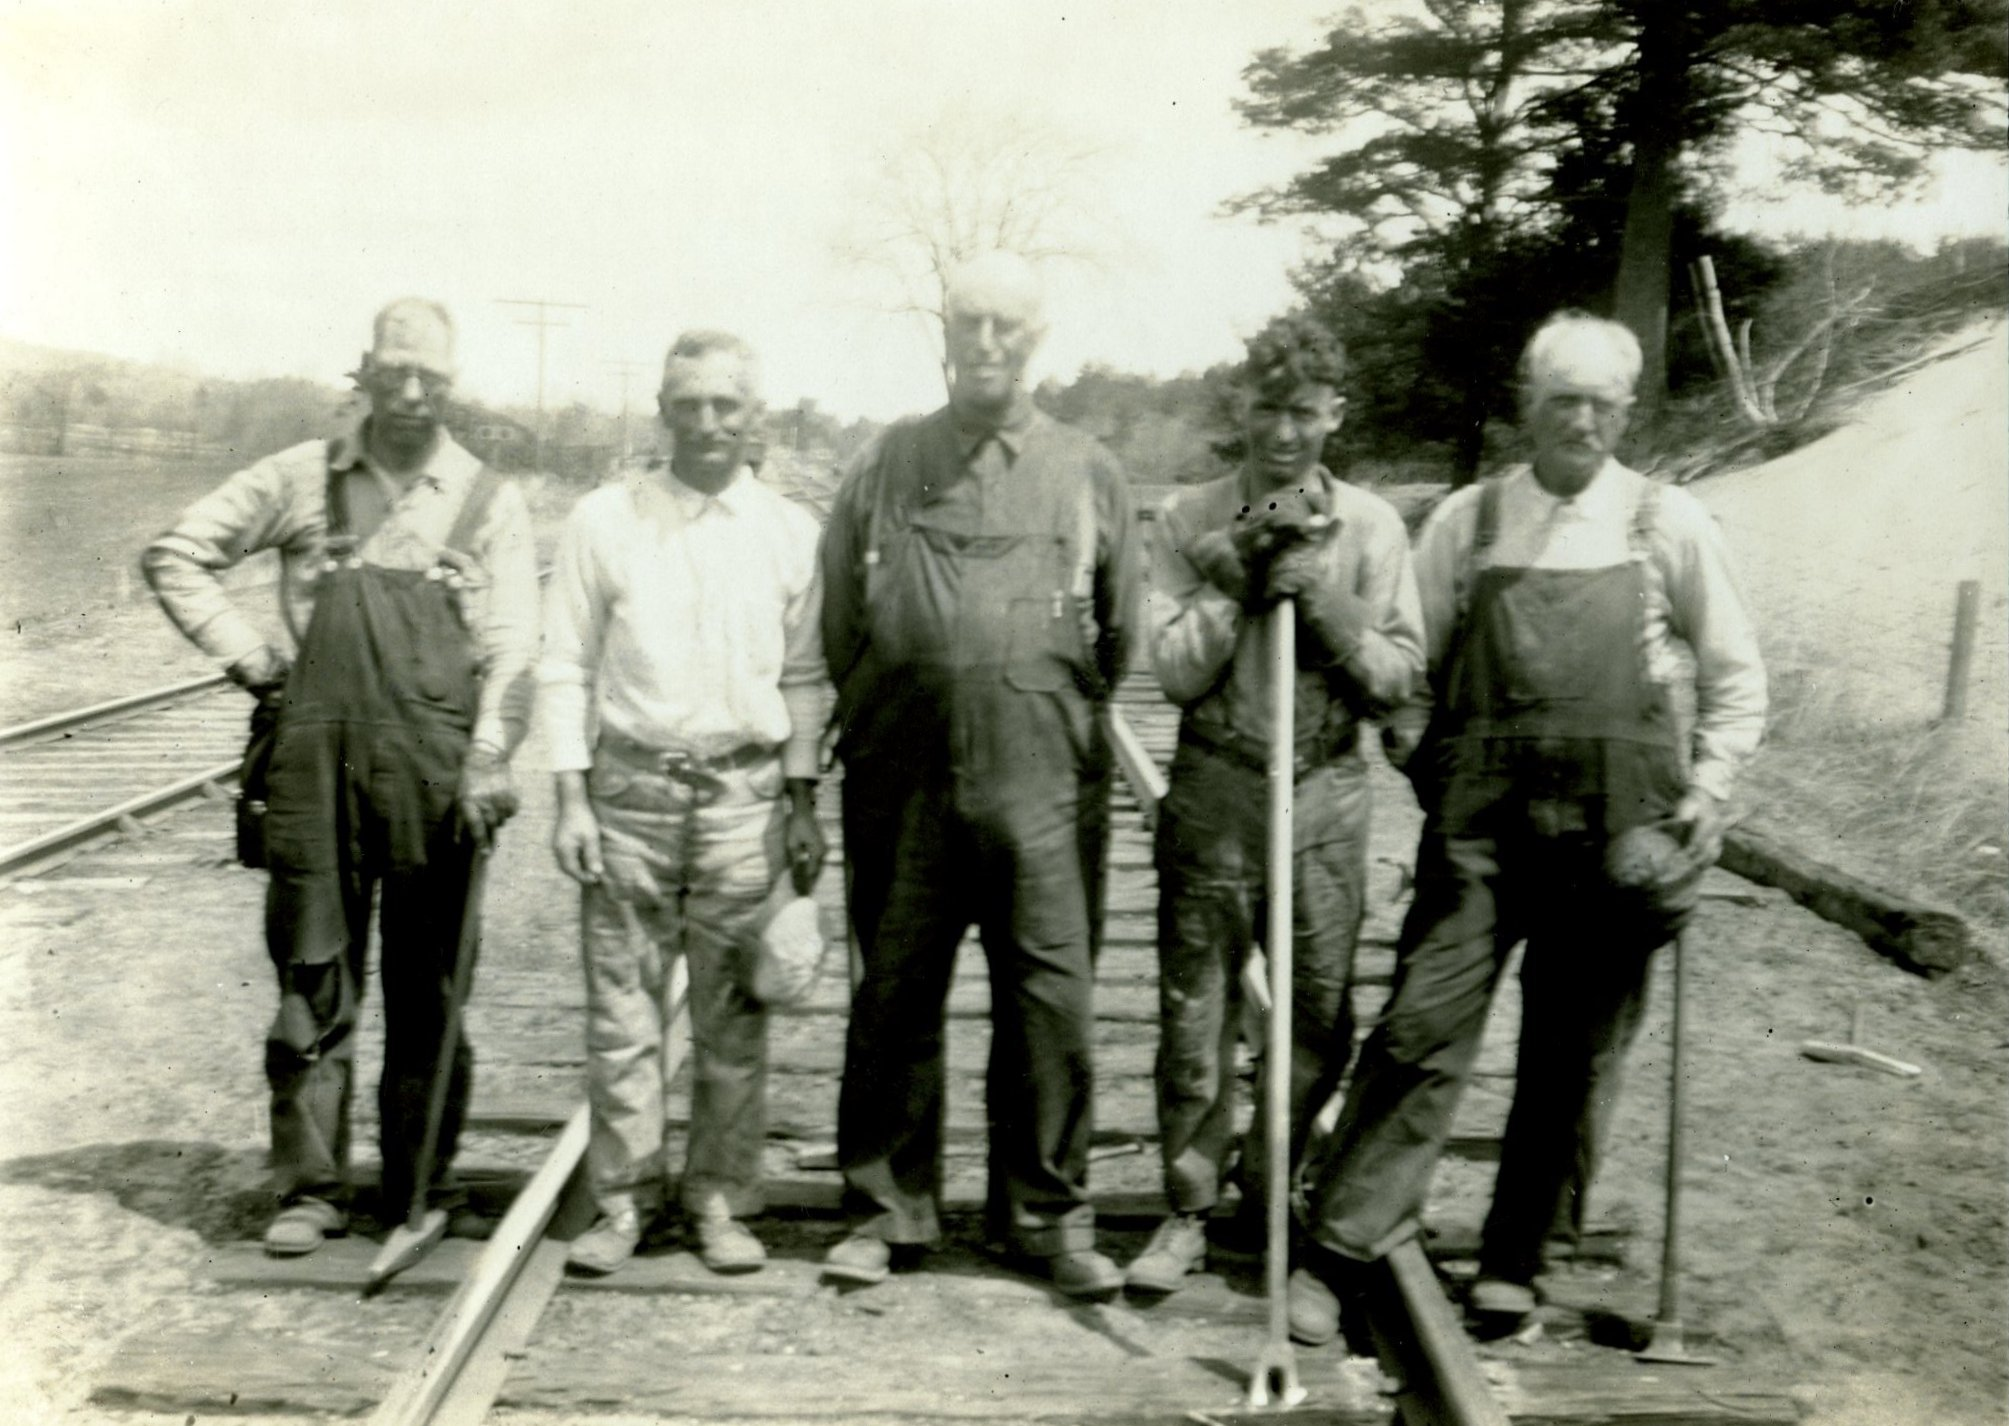 Section gang photo.  One of the two men in the center not holding any tools is likely the foreman.  The man on the left is holding a spike maul that is used to hammer spikes into the ties.  The man second from the right (Theodore Mack of Webster) is holding a spike puller,  a long tool with a forked end used for removing spikes.